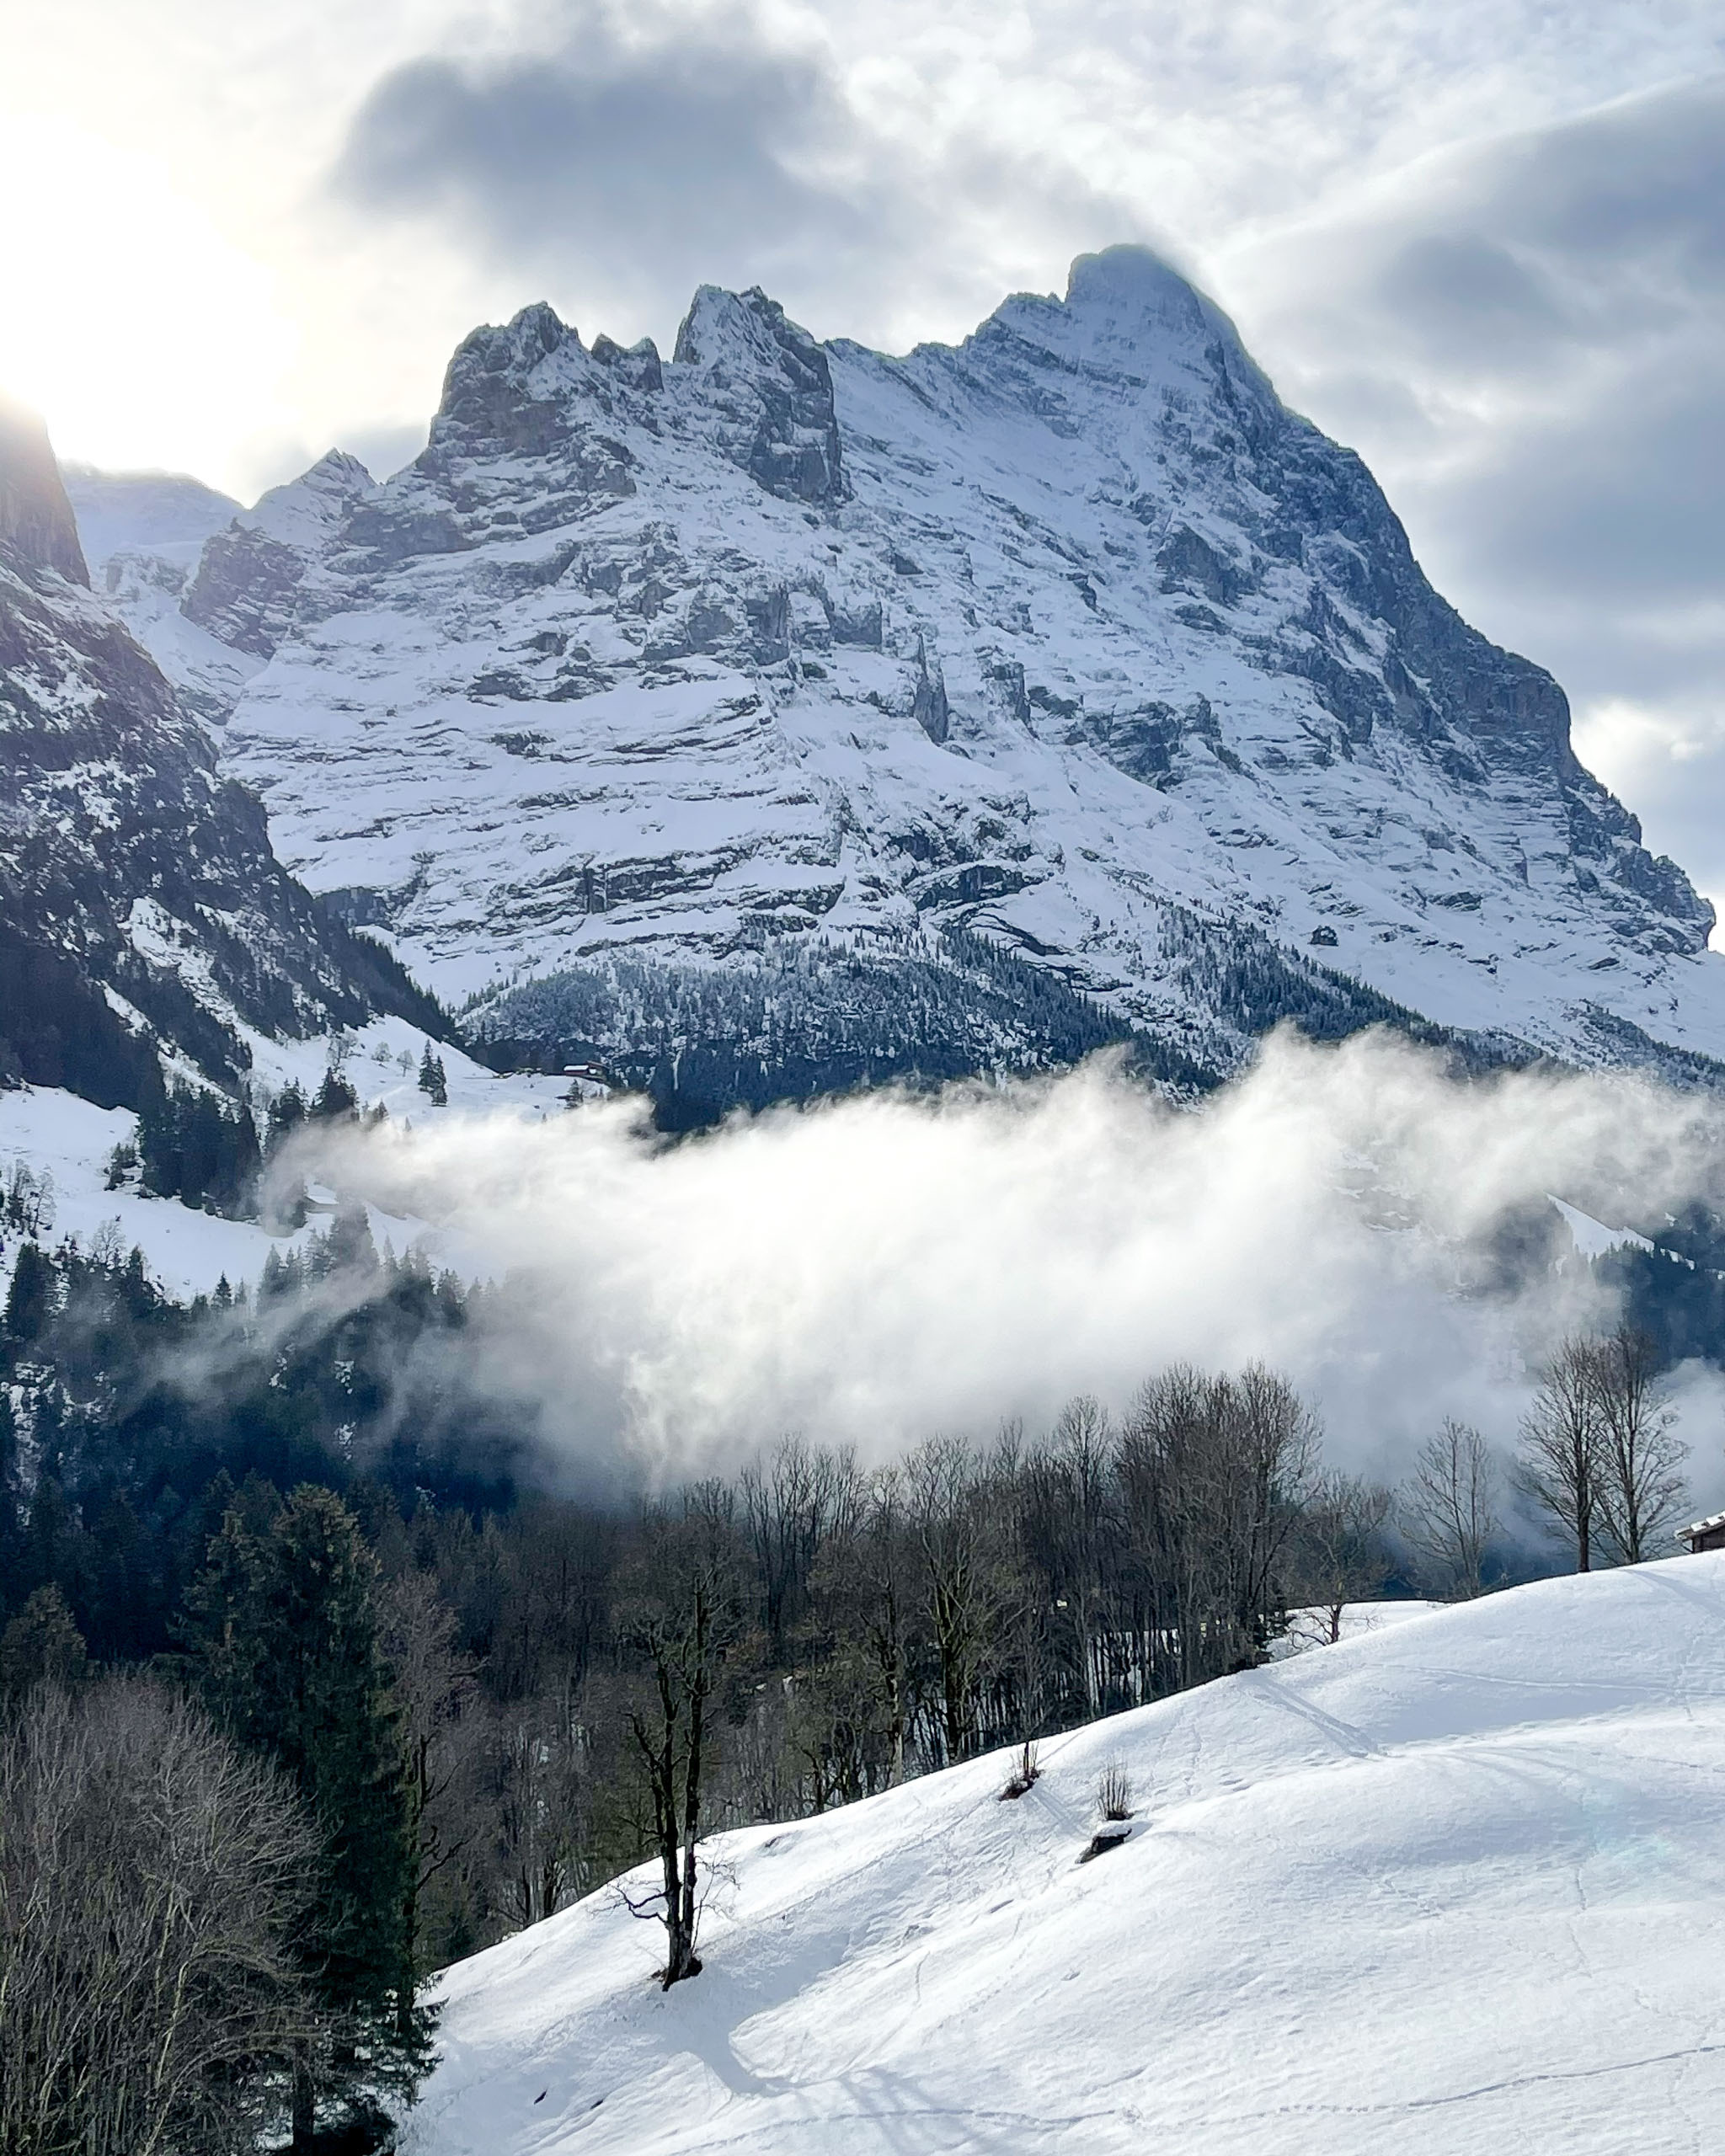 Eiger in winter